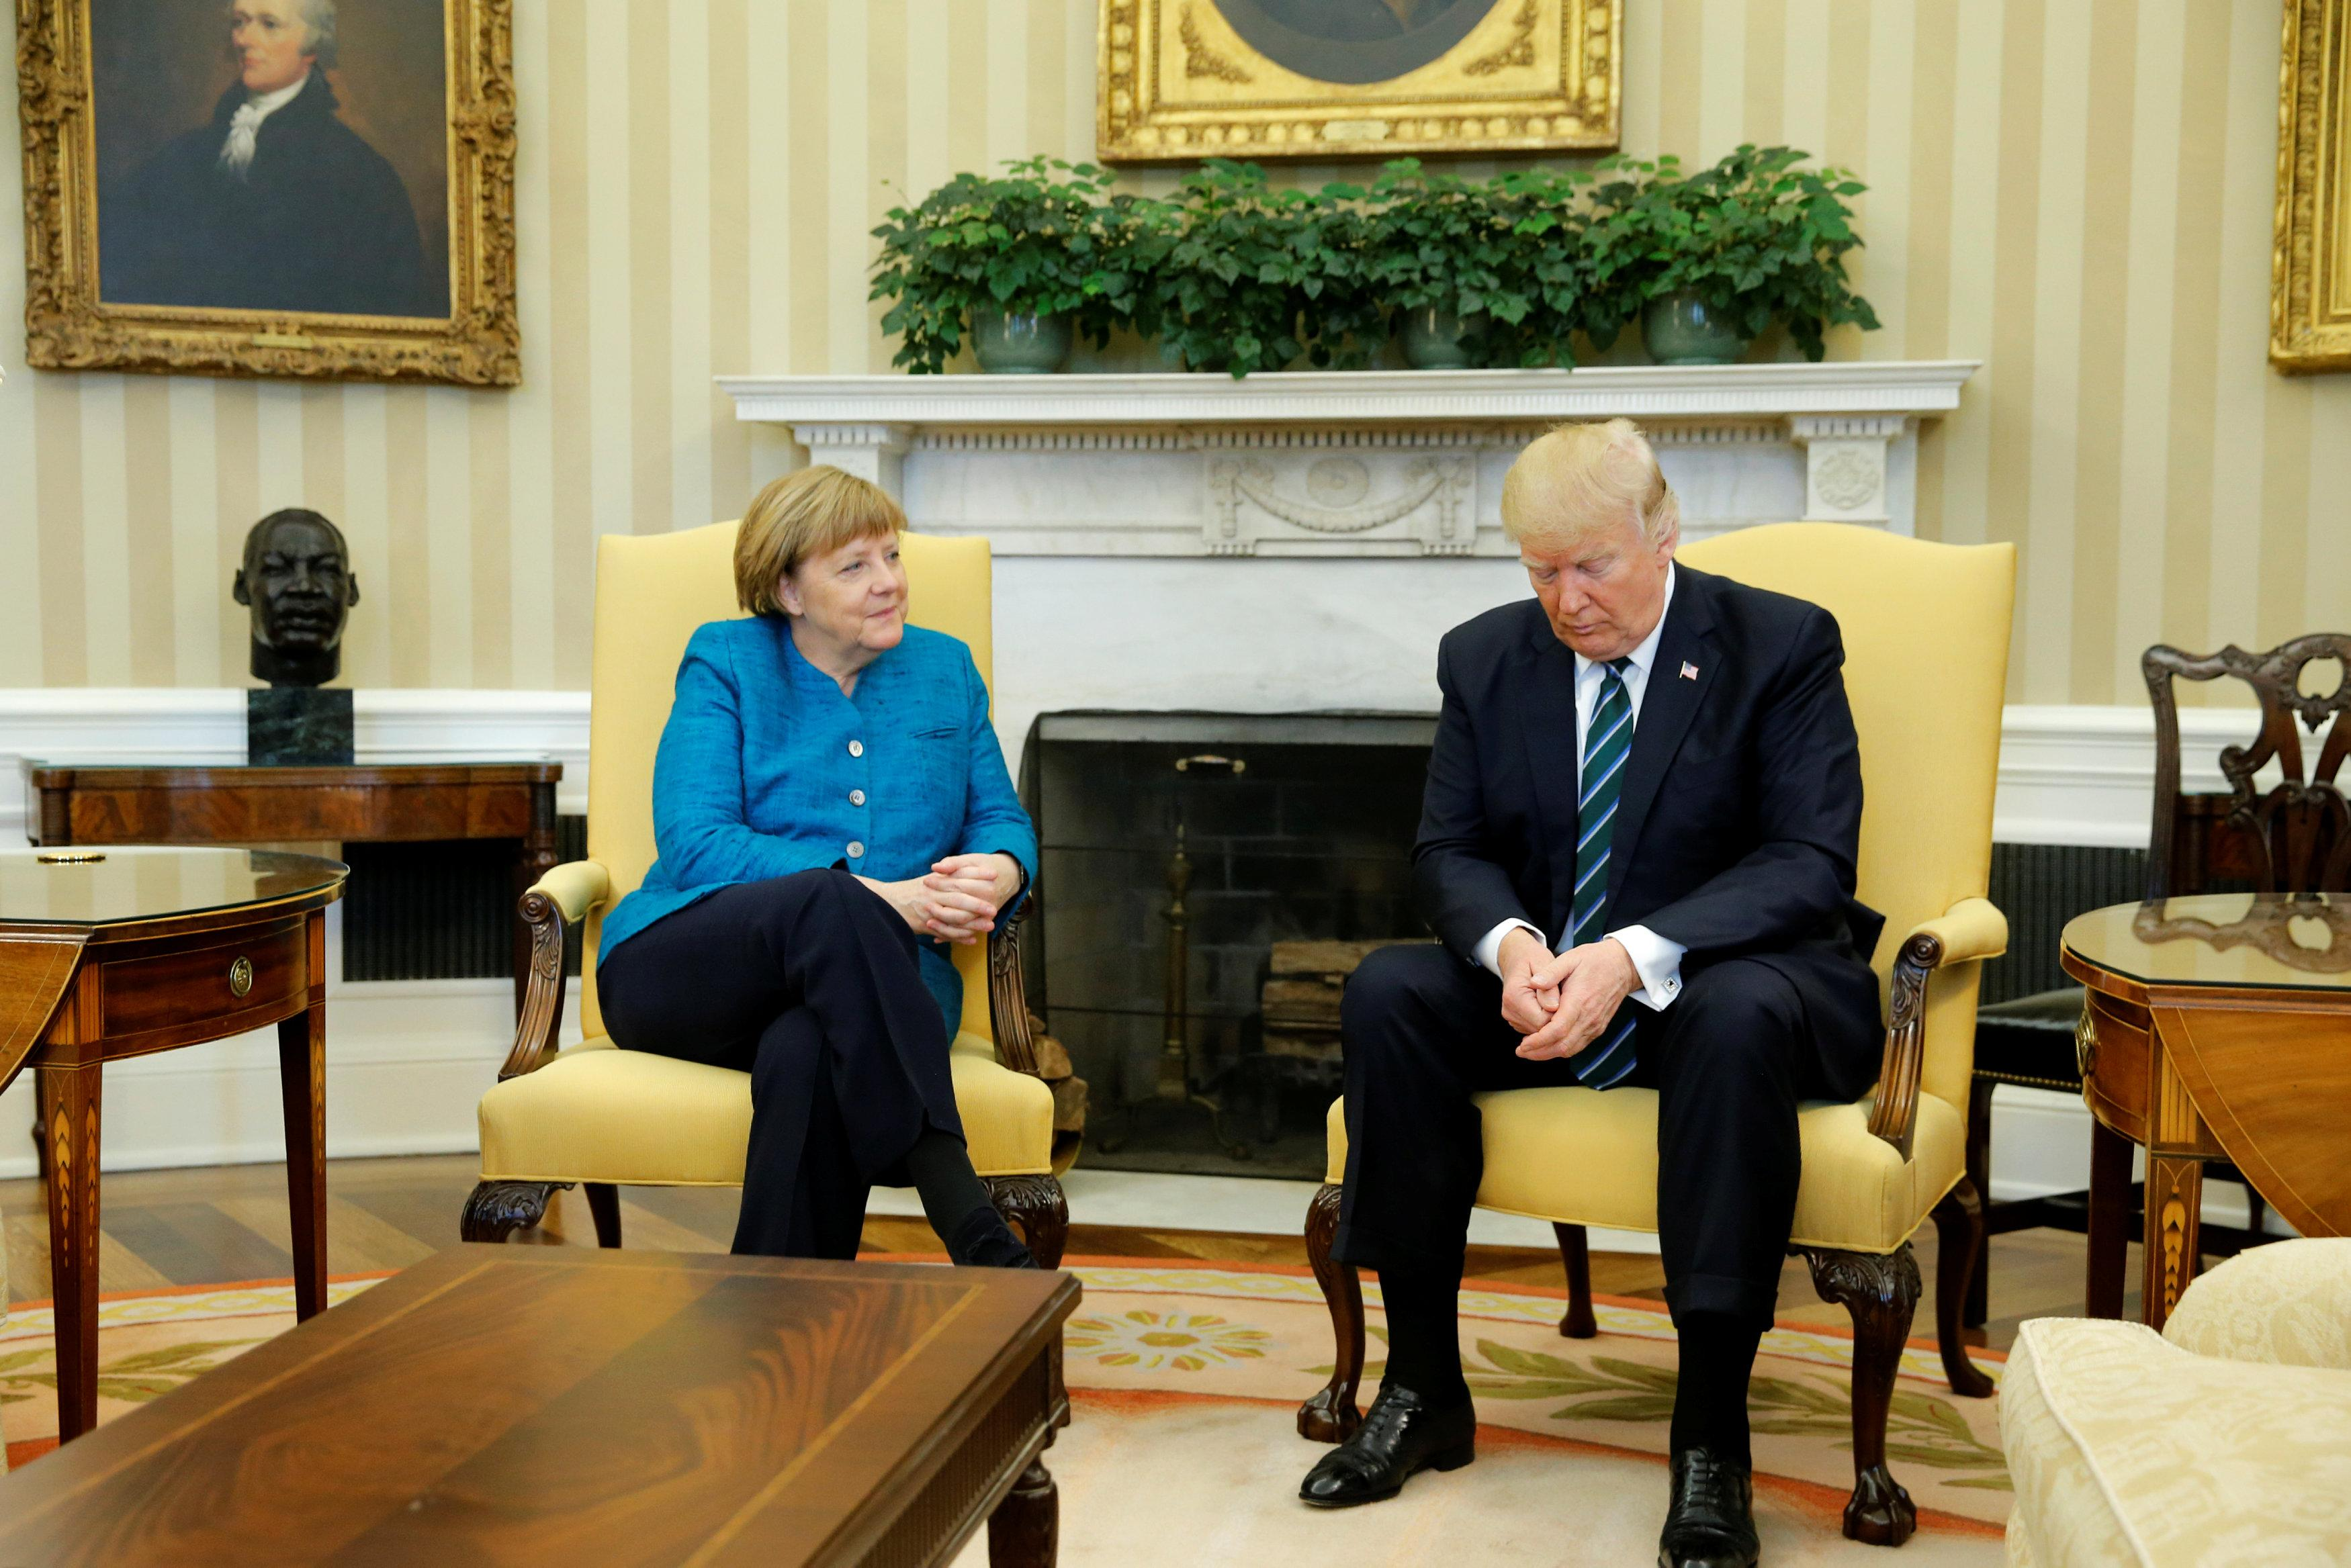 U.S. President Donald Trump and Germany's Chancellor Angela Merkel wait for reporters to enter the room before their meeting in the Oval Office at the White House in Washington, U.S. March 17, 2017. REUTERS/Jonathan Ernst